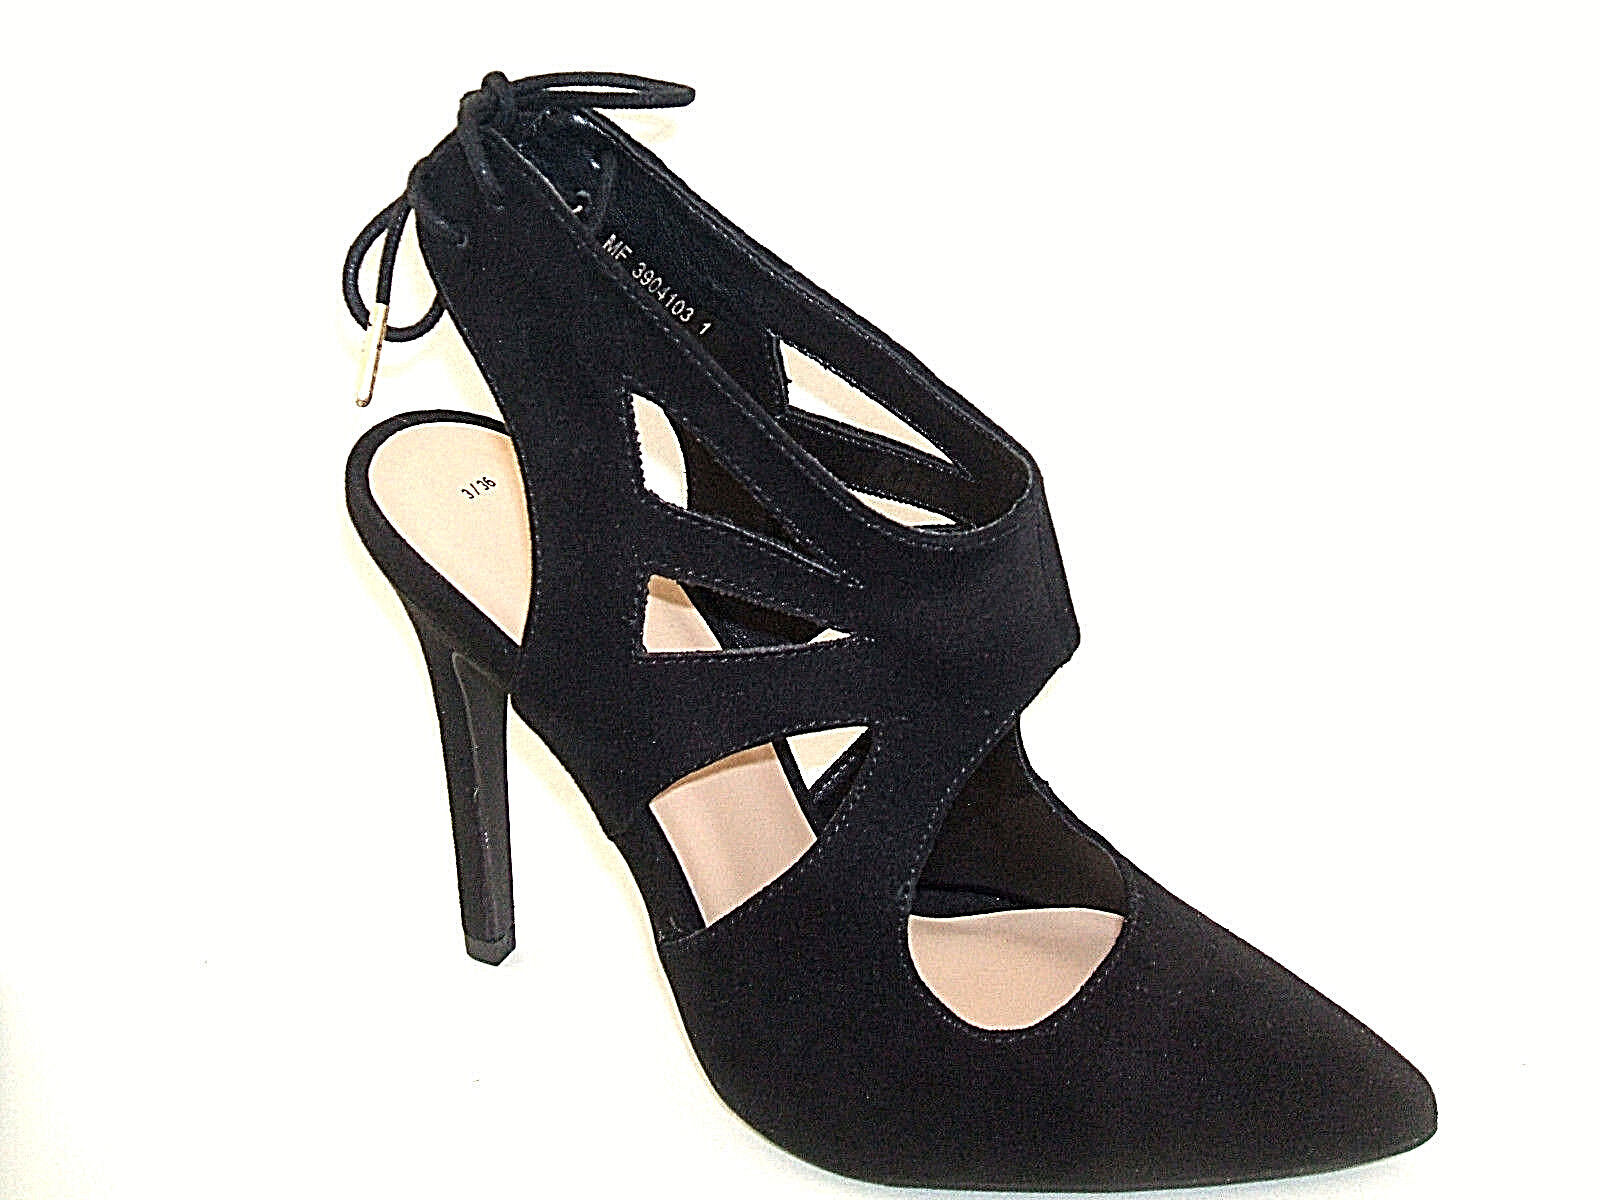 NEW LOOK SIZE 2.5 3 36 BLACK FAUX SUEDE HIGH HEEL SLINGBACK SHOES SANDALS BNEW